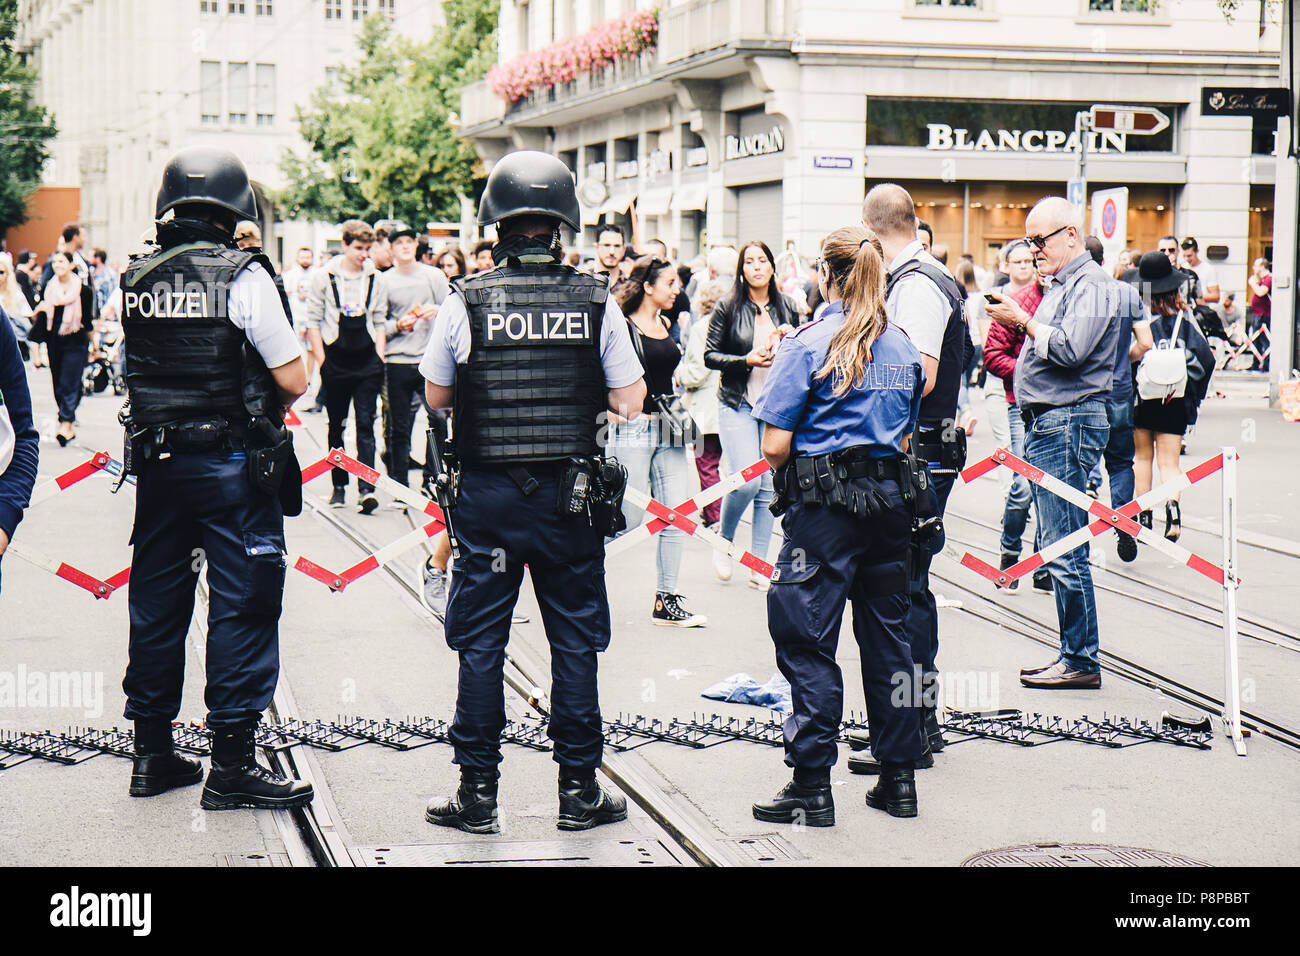 Zurich, Switzerland - August 12, 2017: Crowds of people of all ages on one of the main streets of Zurich, Bahnhofstrasse, walking for the Street Parad - Stock Image